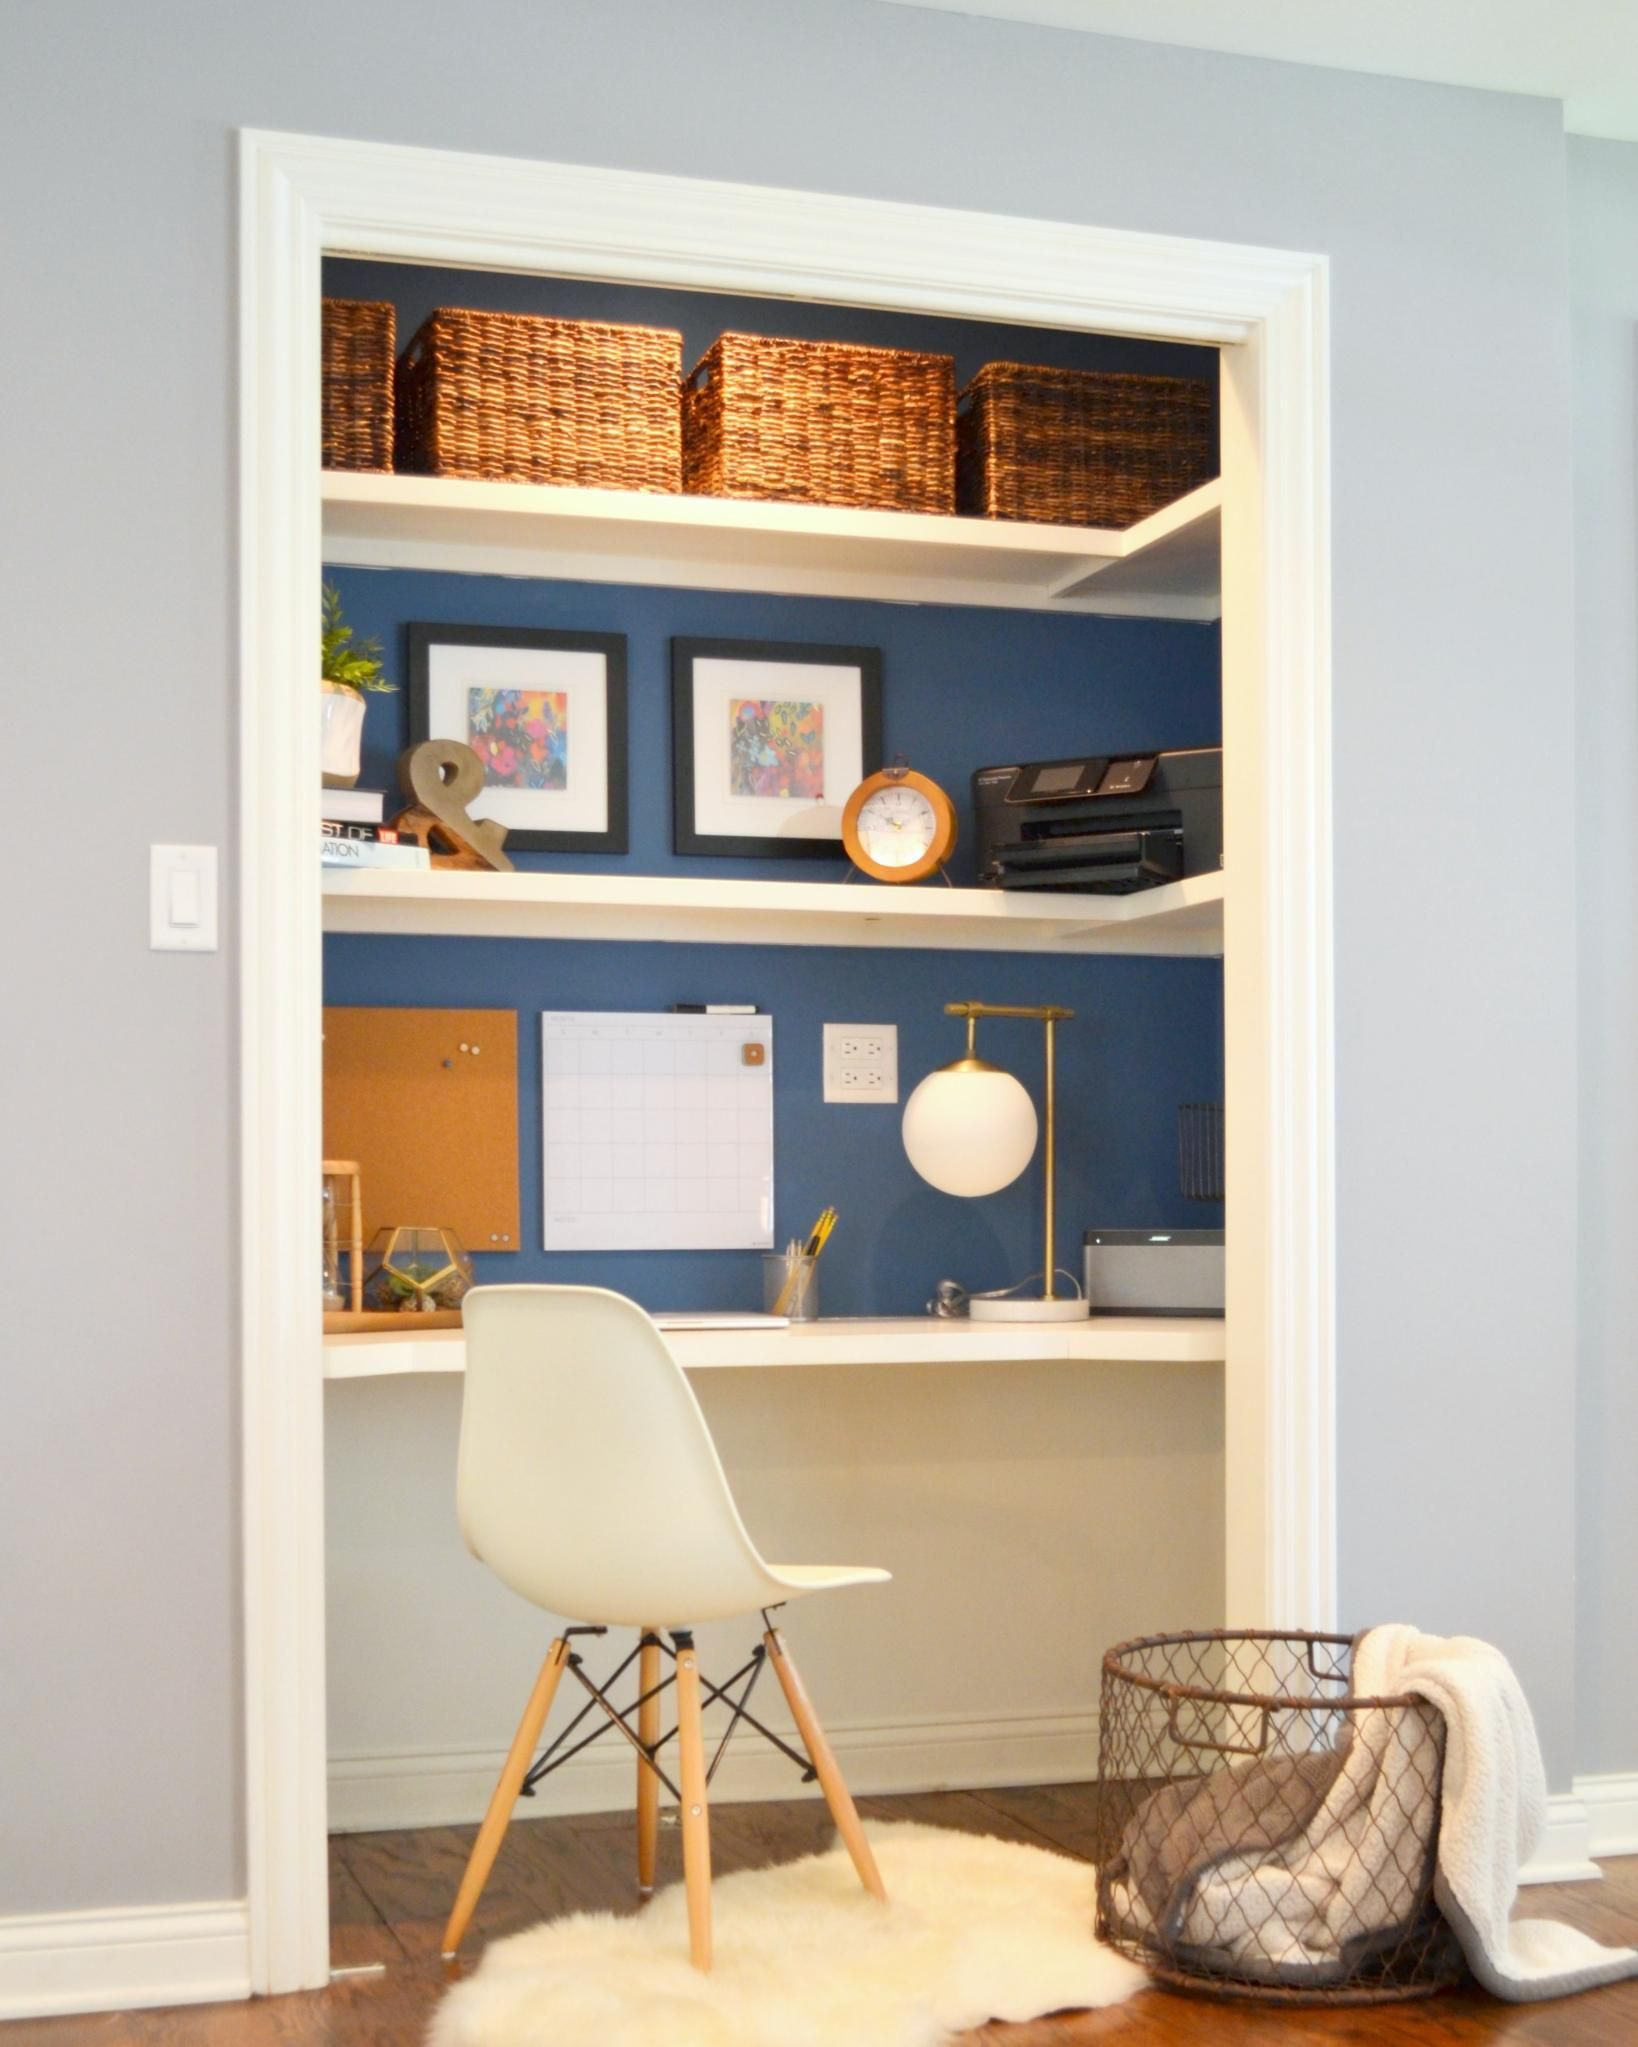 10 Creative Small Closet Ideas | Tiny closet, Extra rooms and Clever